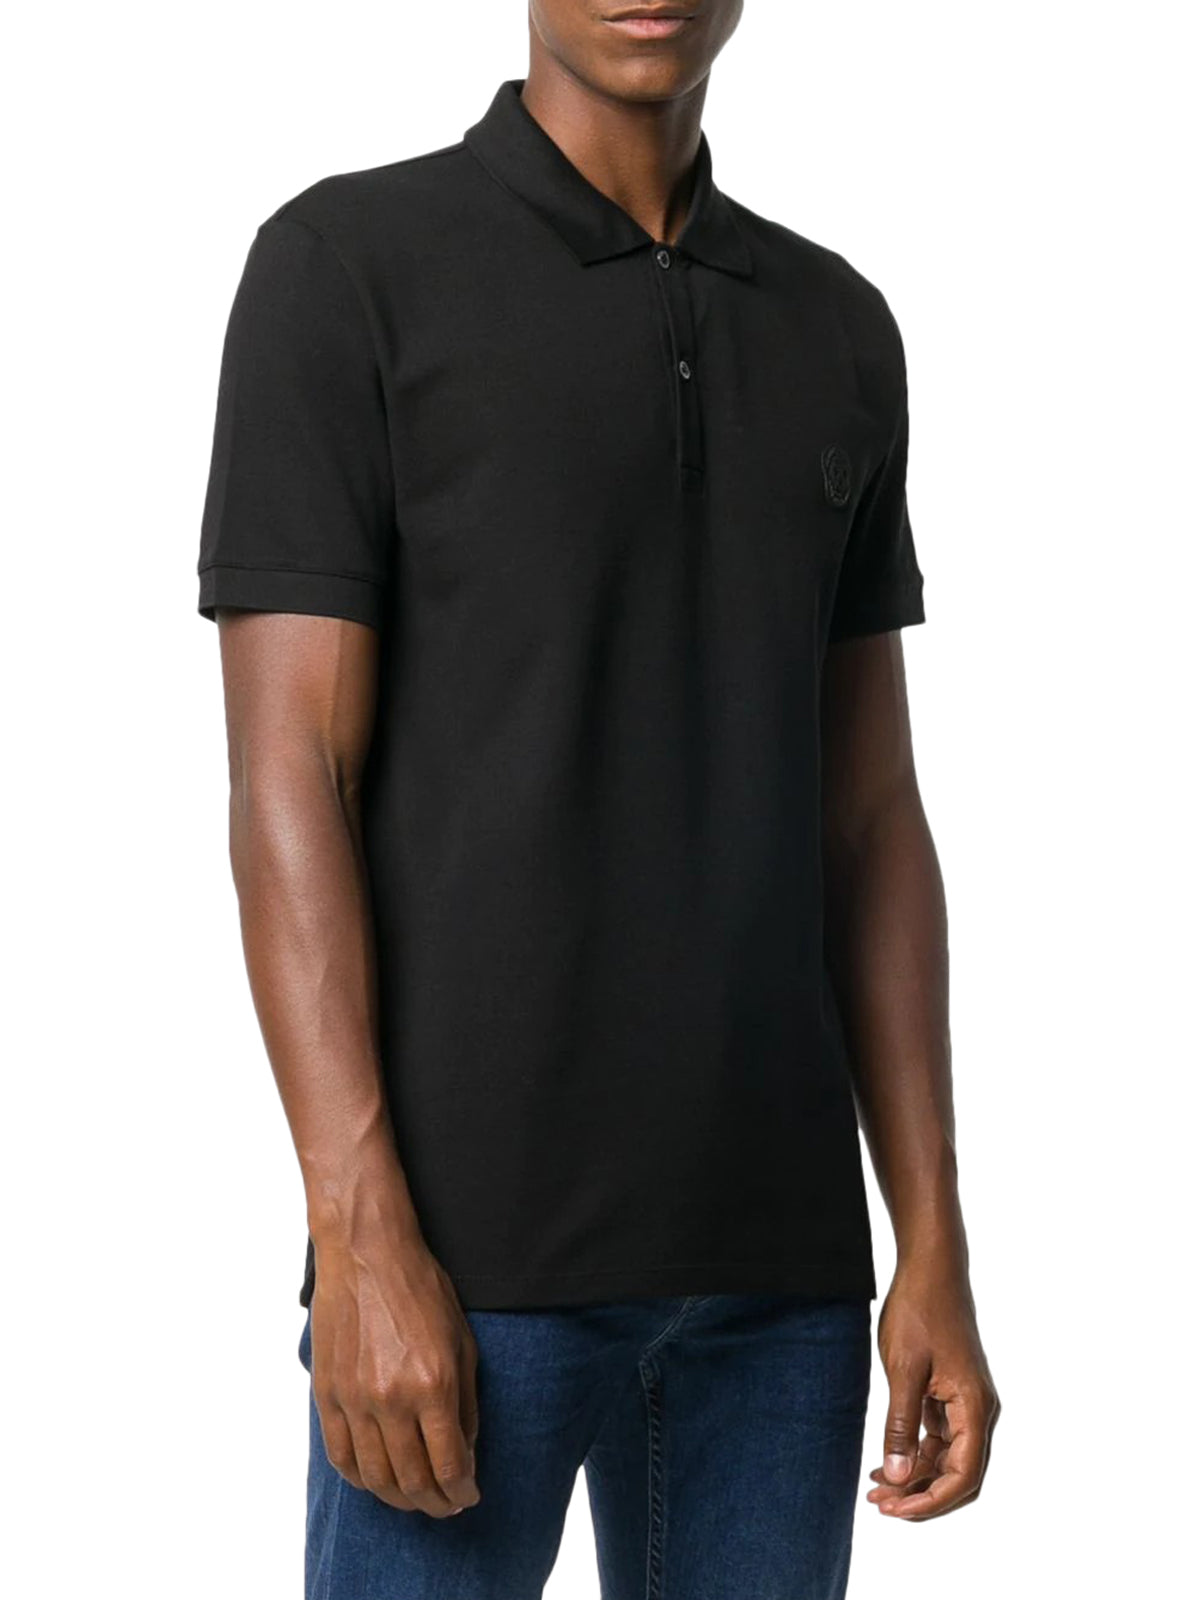 skull patch polo shirt